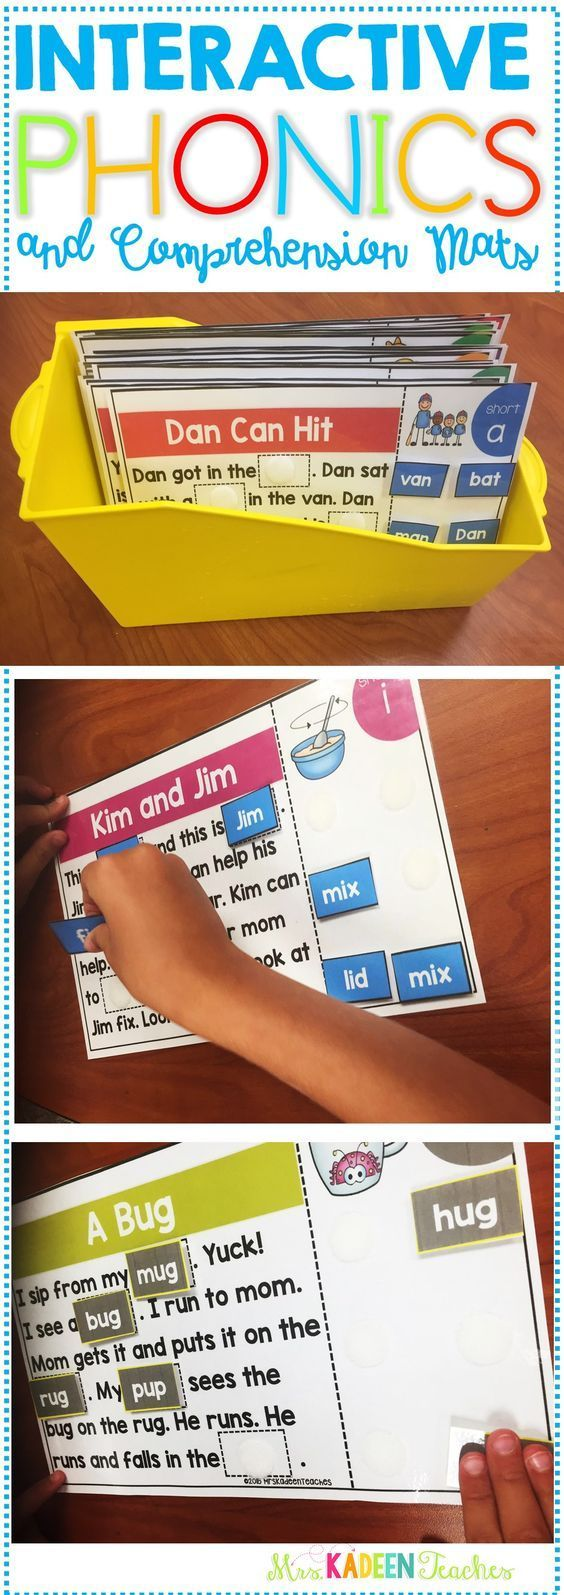 Phonics mat super bundle will be a hit with students. Test comprehension skills and add an hands on approach to reading. Students find the correct words to complete the simple stories . This super bundles includes stories for the whole year !